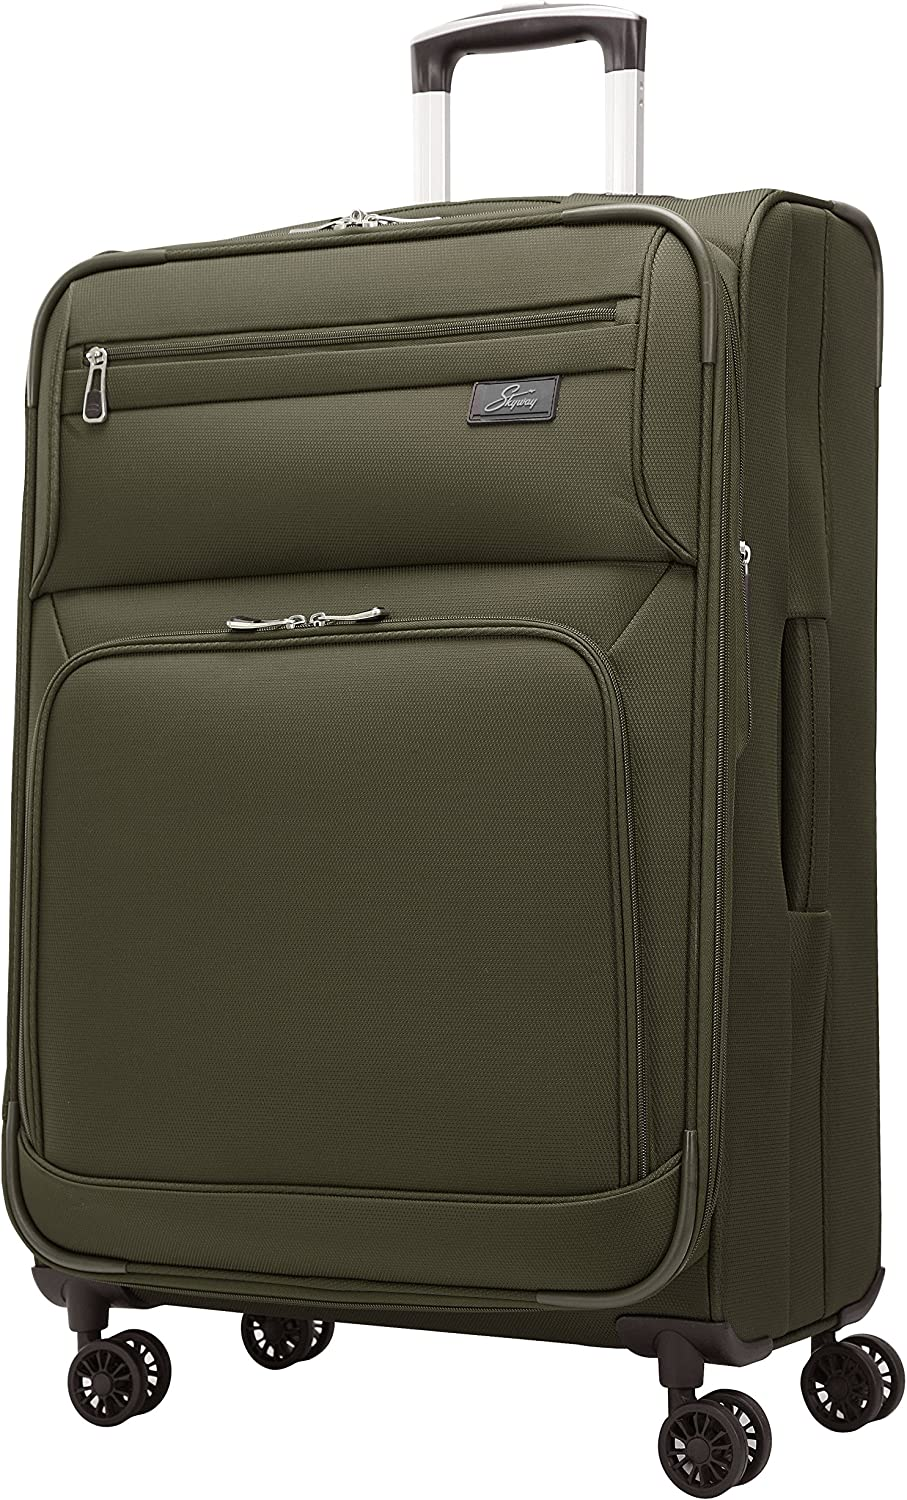 Skyway Sigma 5.0 25-Inch 4 Wheel Expandable Upright, Forest Green